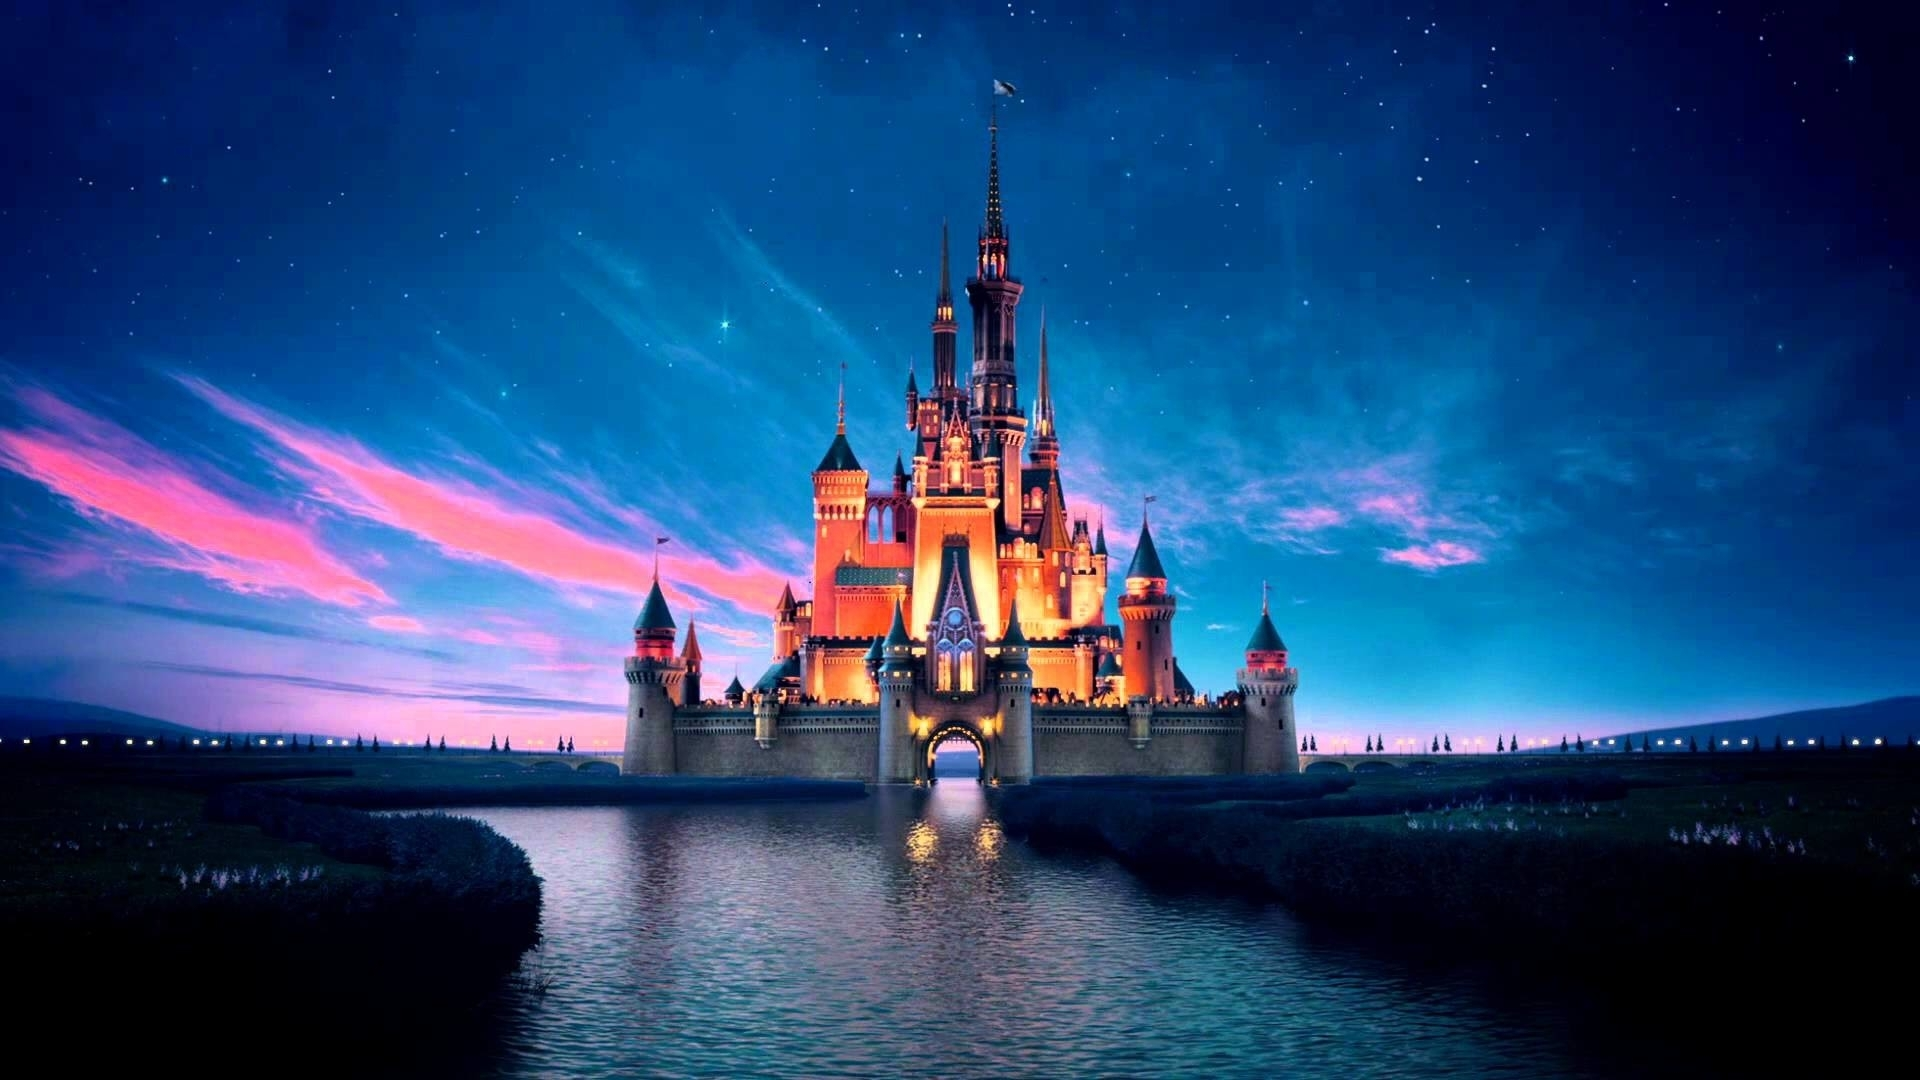 10 Latest Disney Castle Desktop Wallpaper FULL HD 1920×1080 For PC Desktop